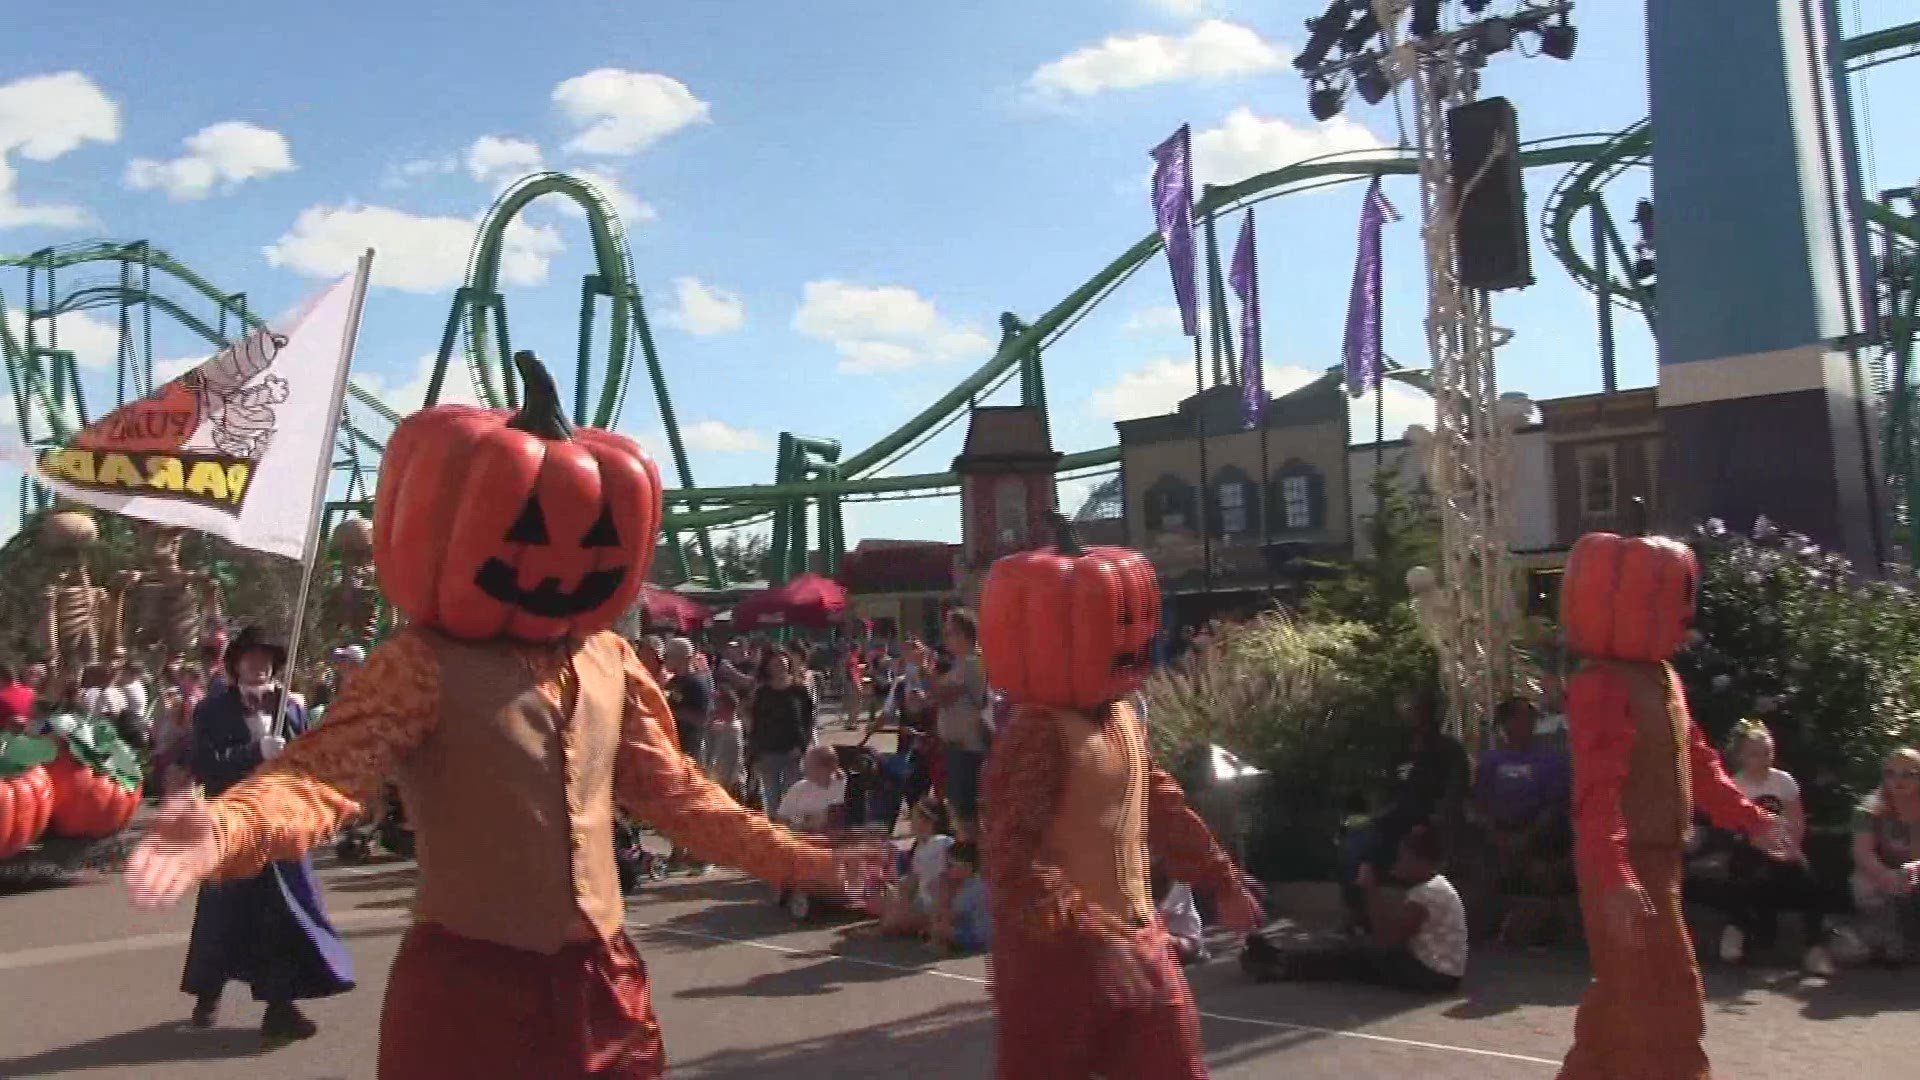 Halloween Events Ohio 2020 What is replacing HalloWeekends at Cedar Point? New event planned